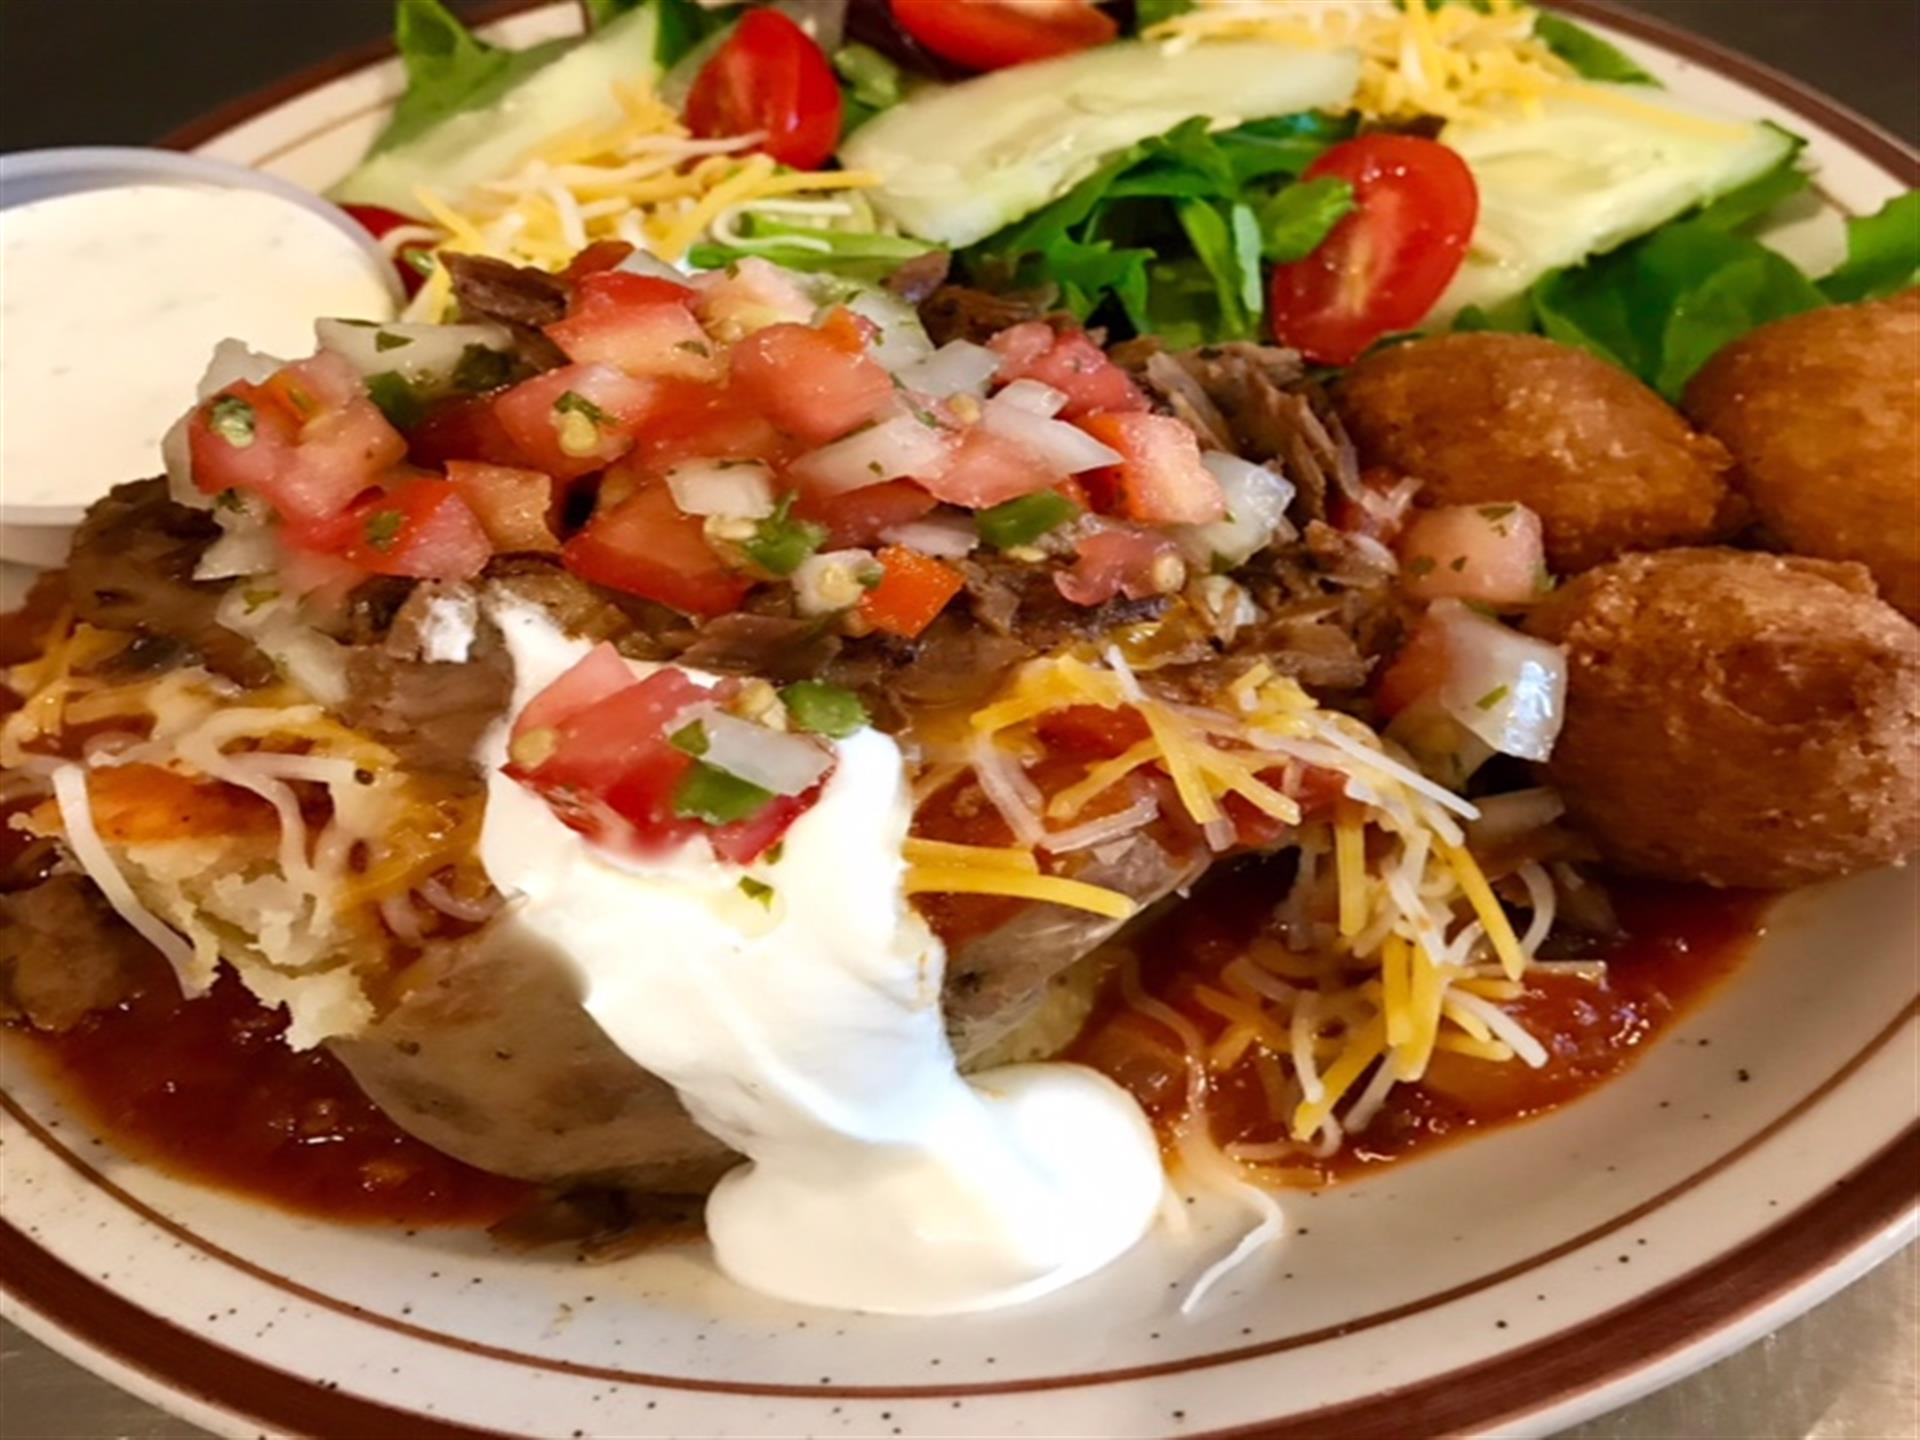 bbq baked potato served with side salad, and hush puppies